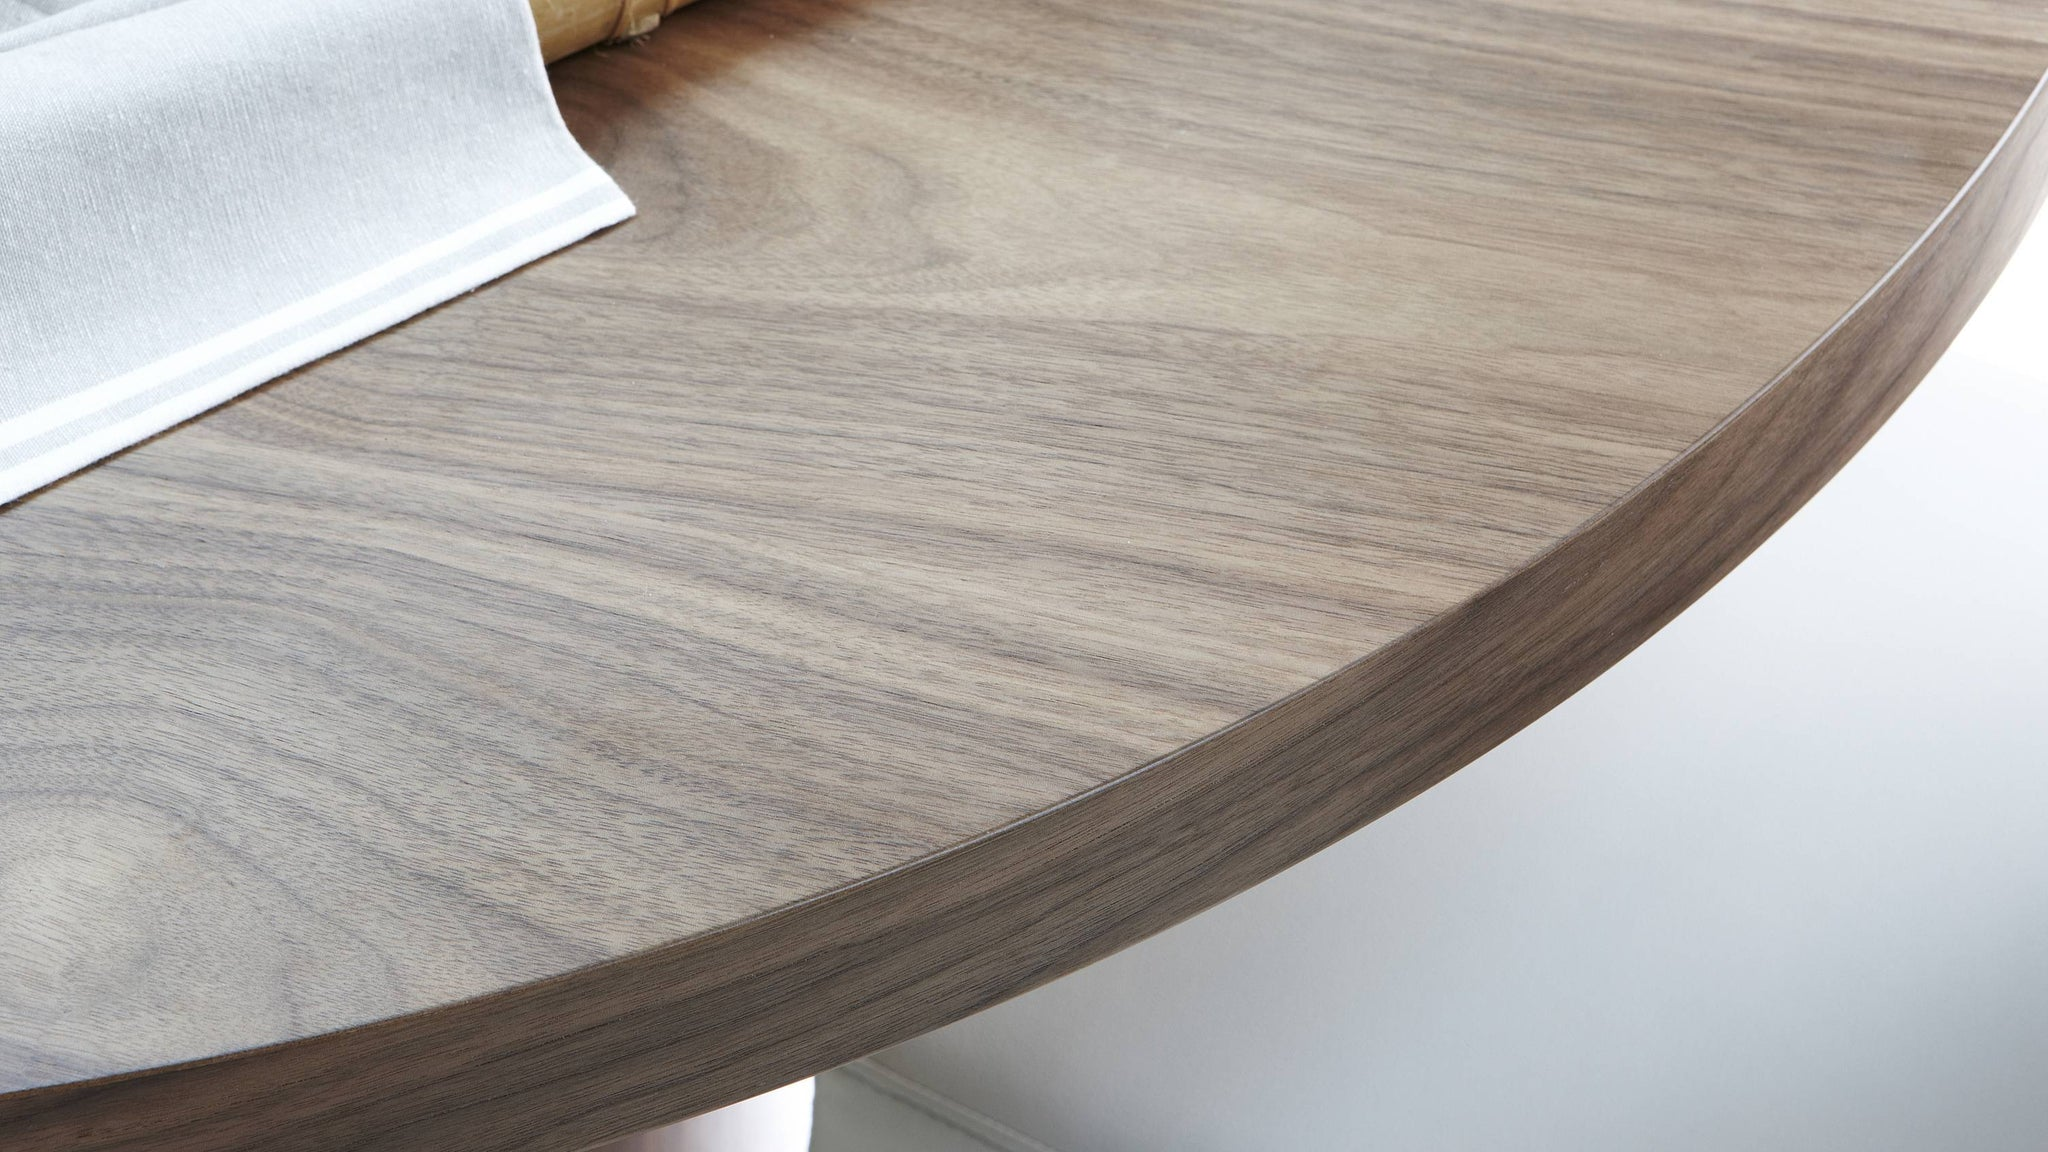 Chrome Legged Dining Chairs with Walnut Dining Table